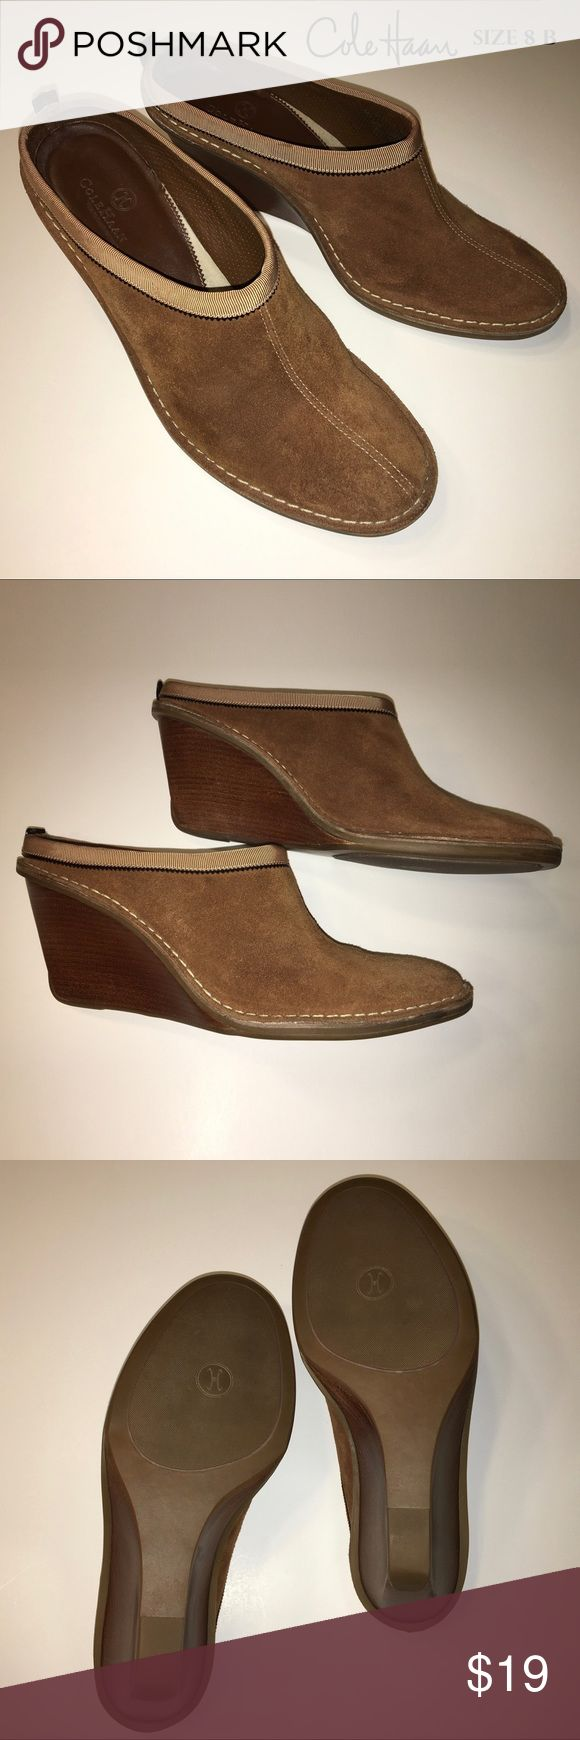 Cole Haan 8 B Brown Suede Wedge Clogs Shoes Excellent condition, Cole Haan Wedge Clogs Mules Slides Shoes. Actual shoes shown in photos. Cole Haan Shoes Wedges